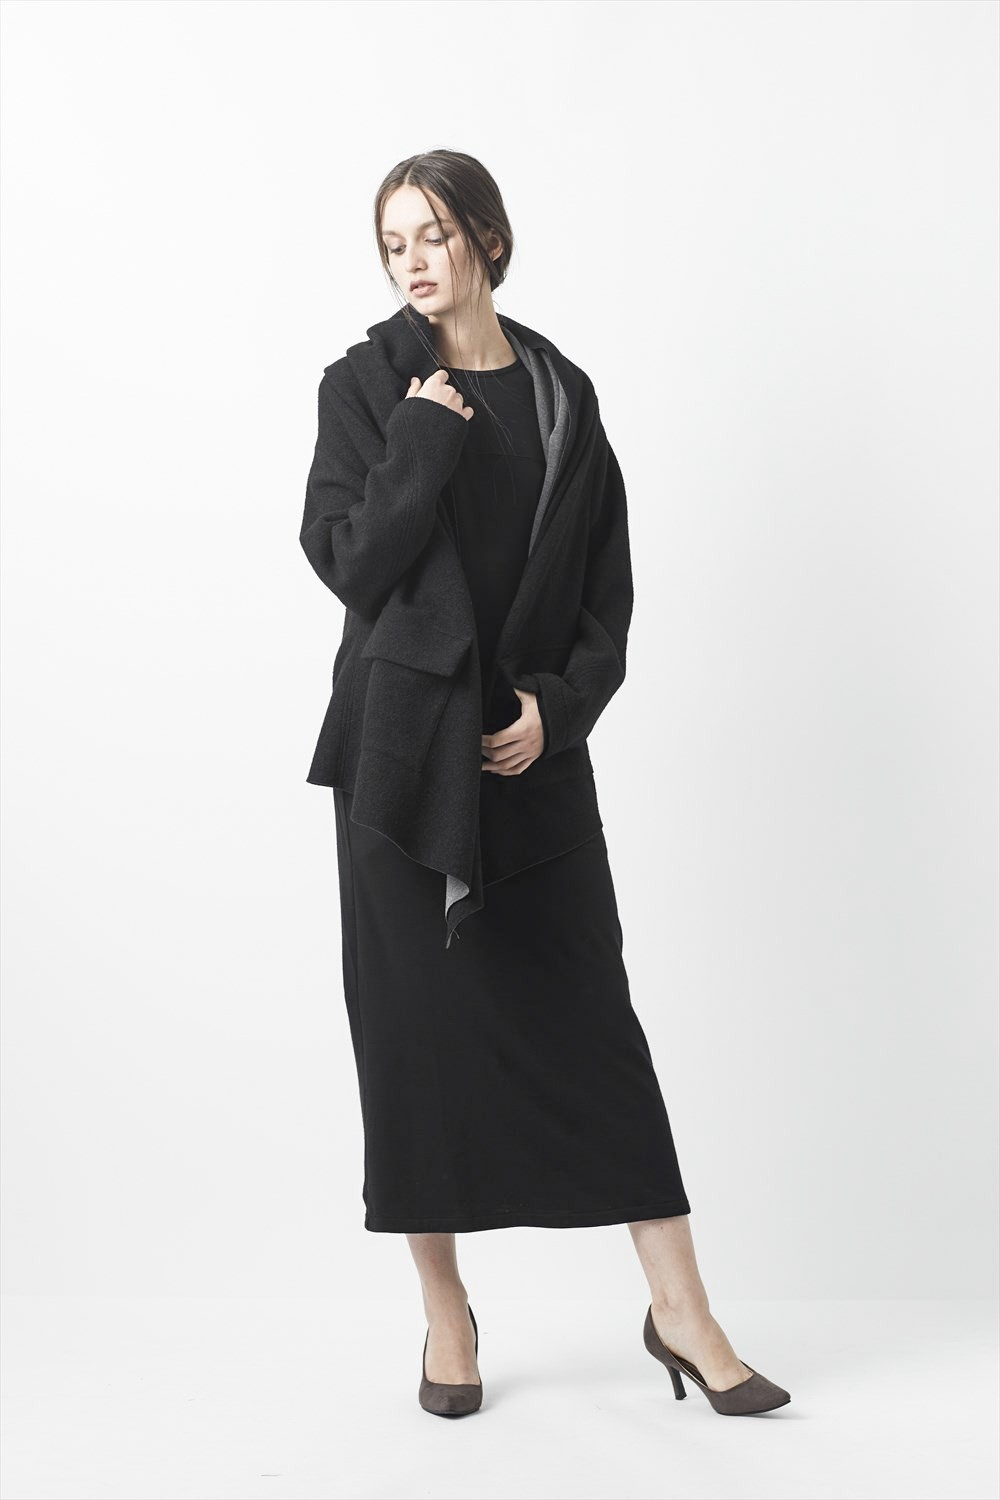 Dual-layered Cardigan Coat - AL-1272